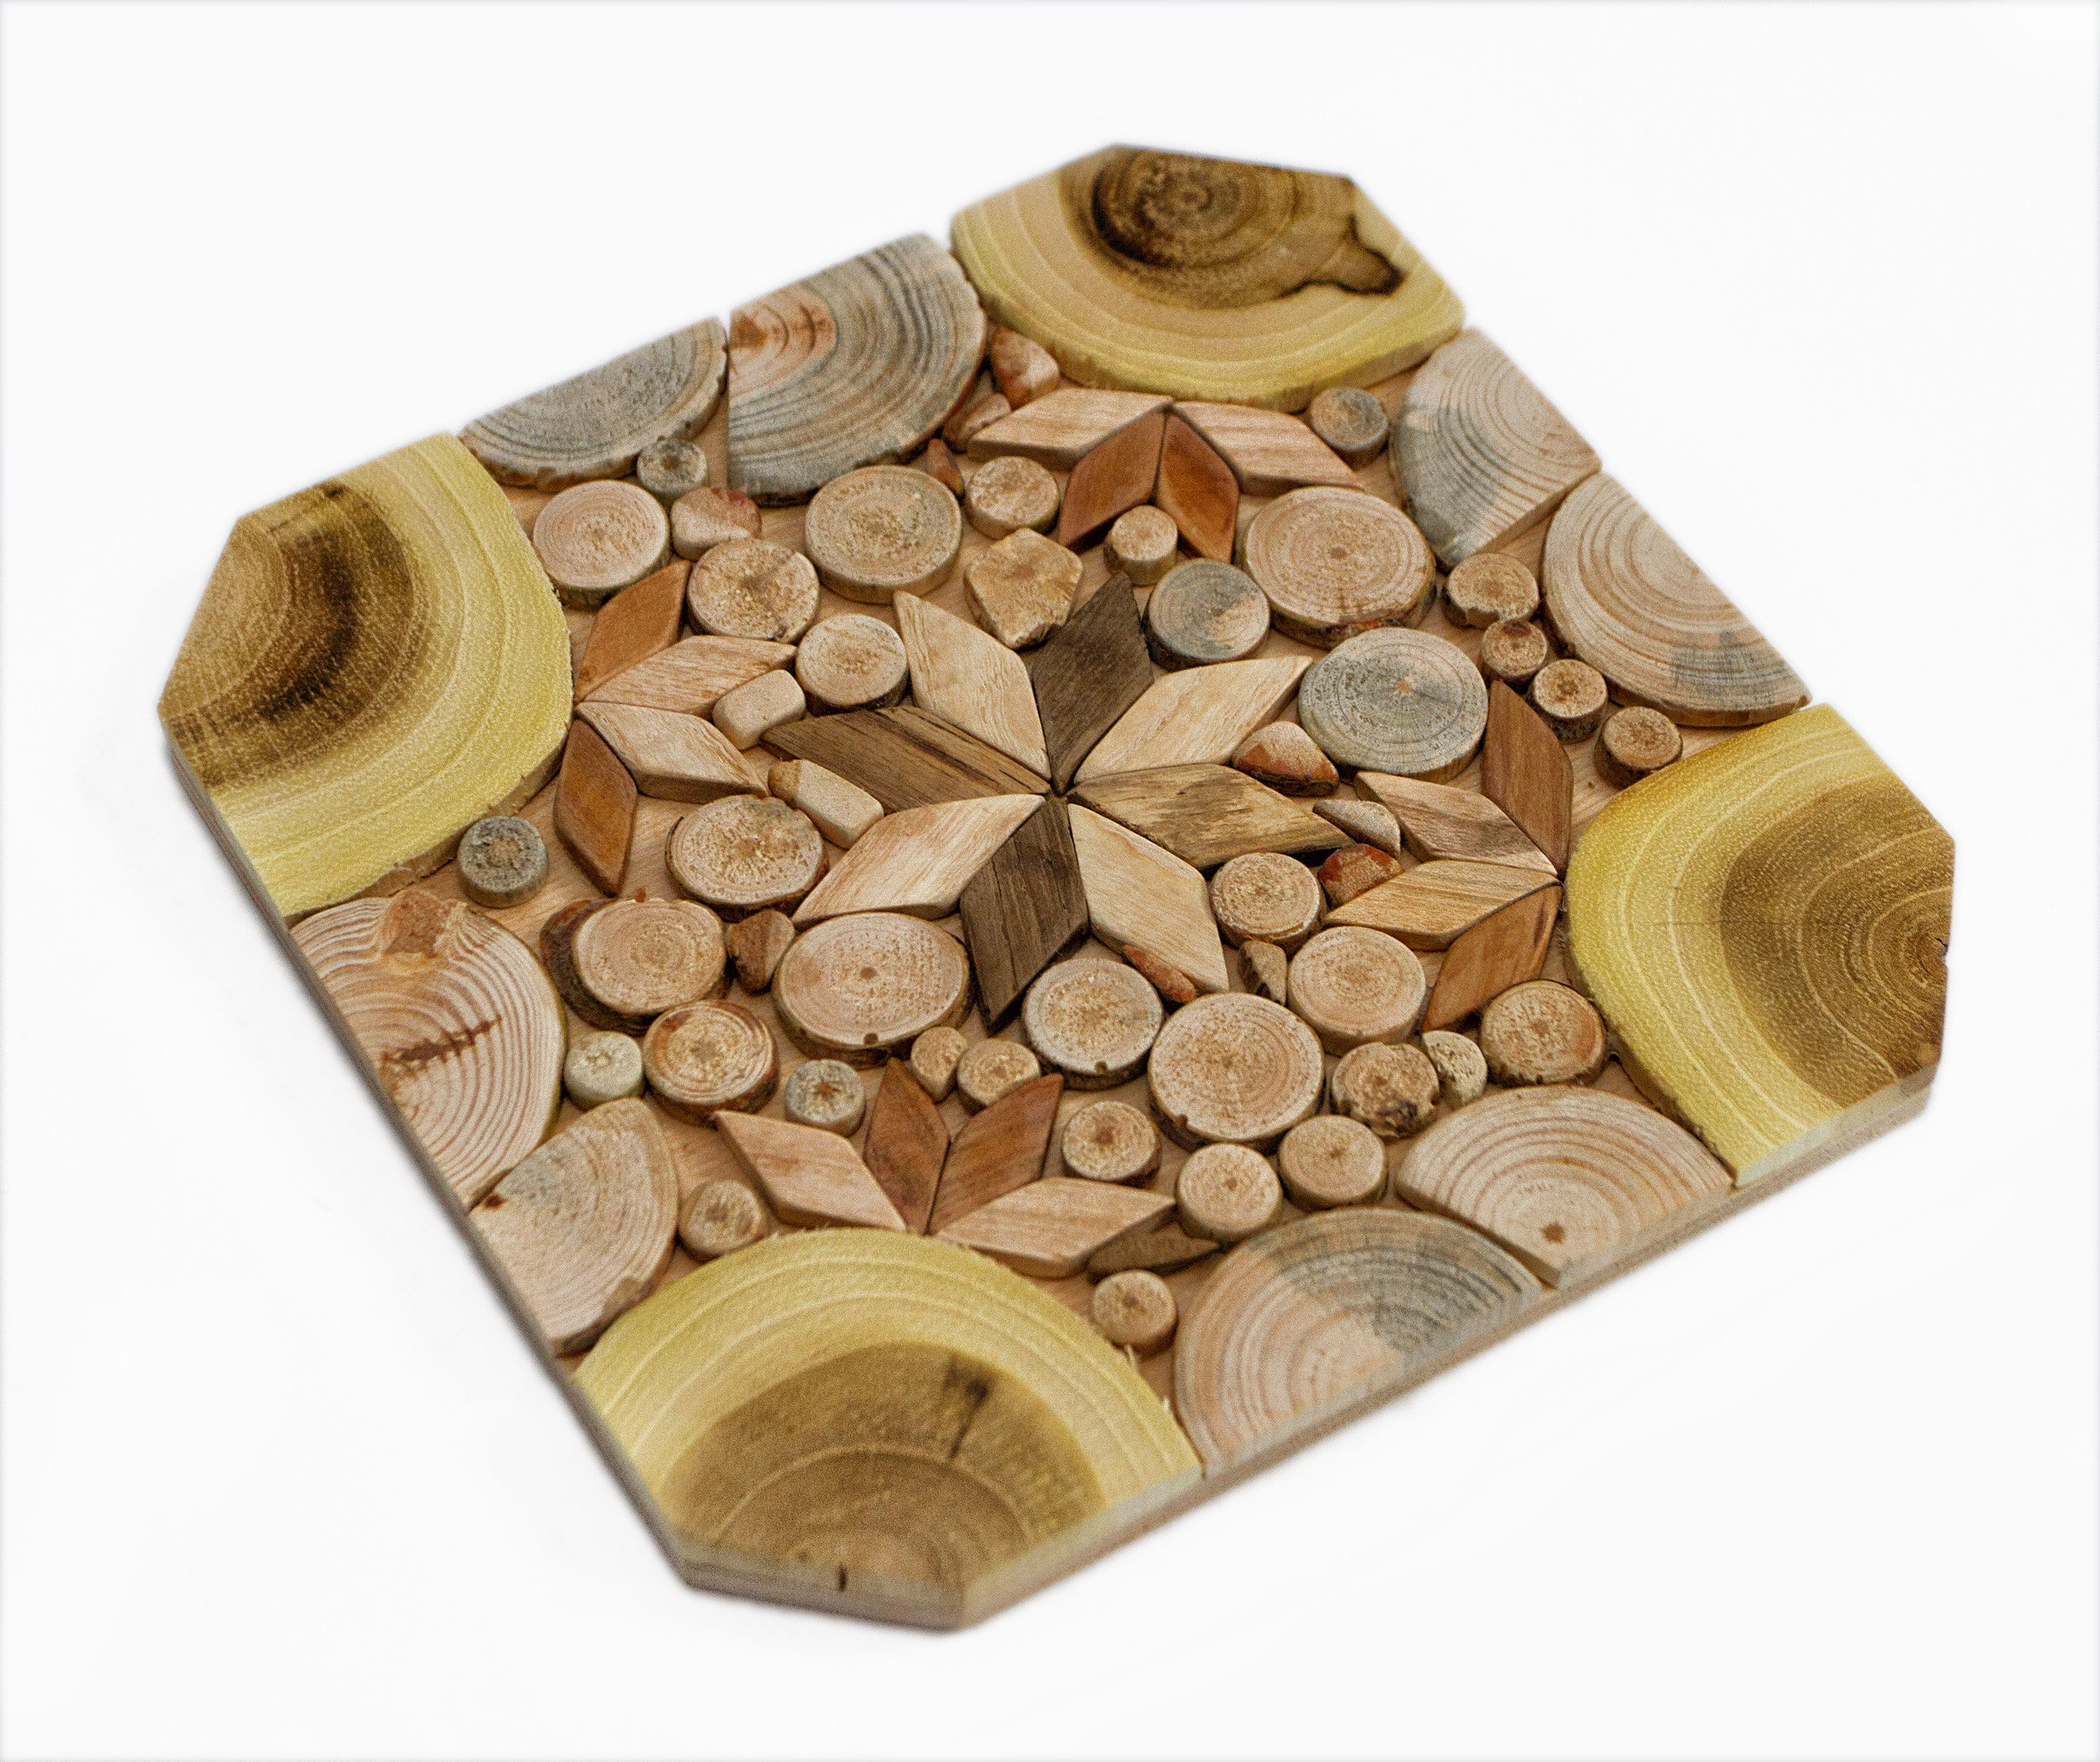 Wooden Trivet for Hot Dishes - Handmade Mosaic - Big Coaster - 6 Sorts of Wood - Natural Smell - Unique Art Decor in the Kitchen - Made by SPL Woodcraft Ukraine by SPL woodcraft